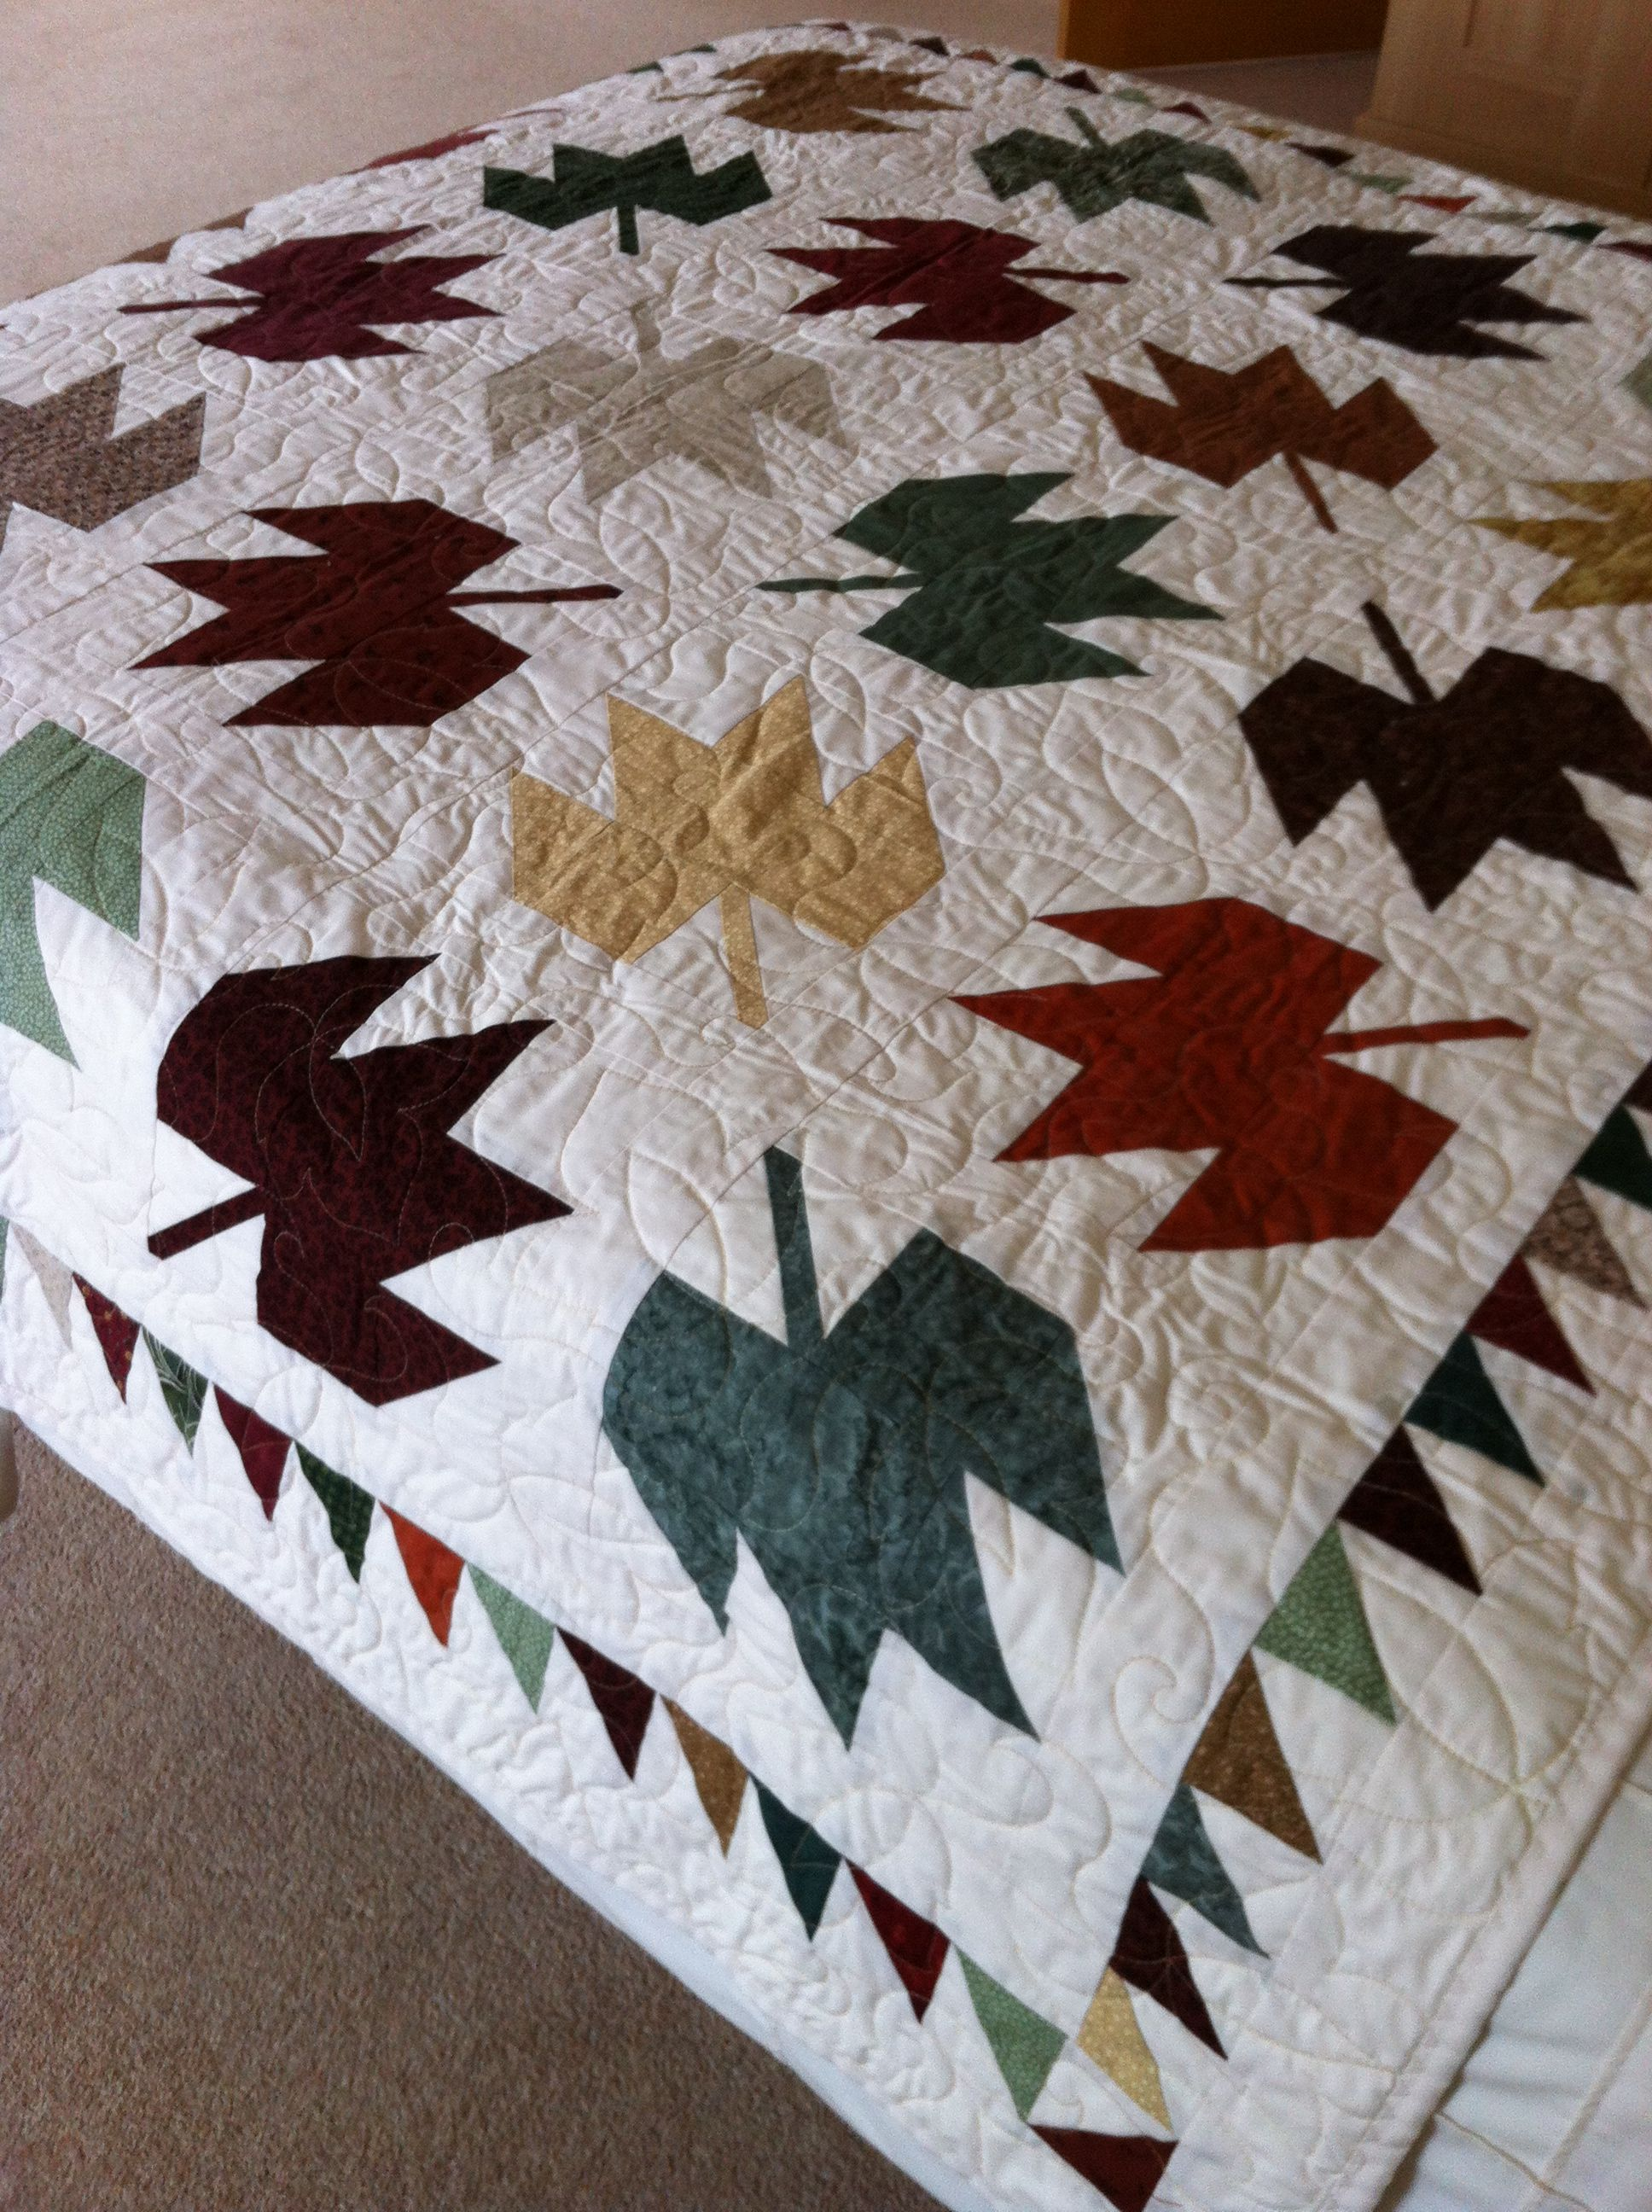 Pin by Mária Fazekas on quilting   Fall quilts, Quilting designs ...